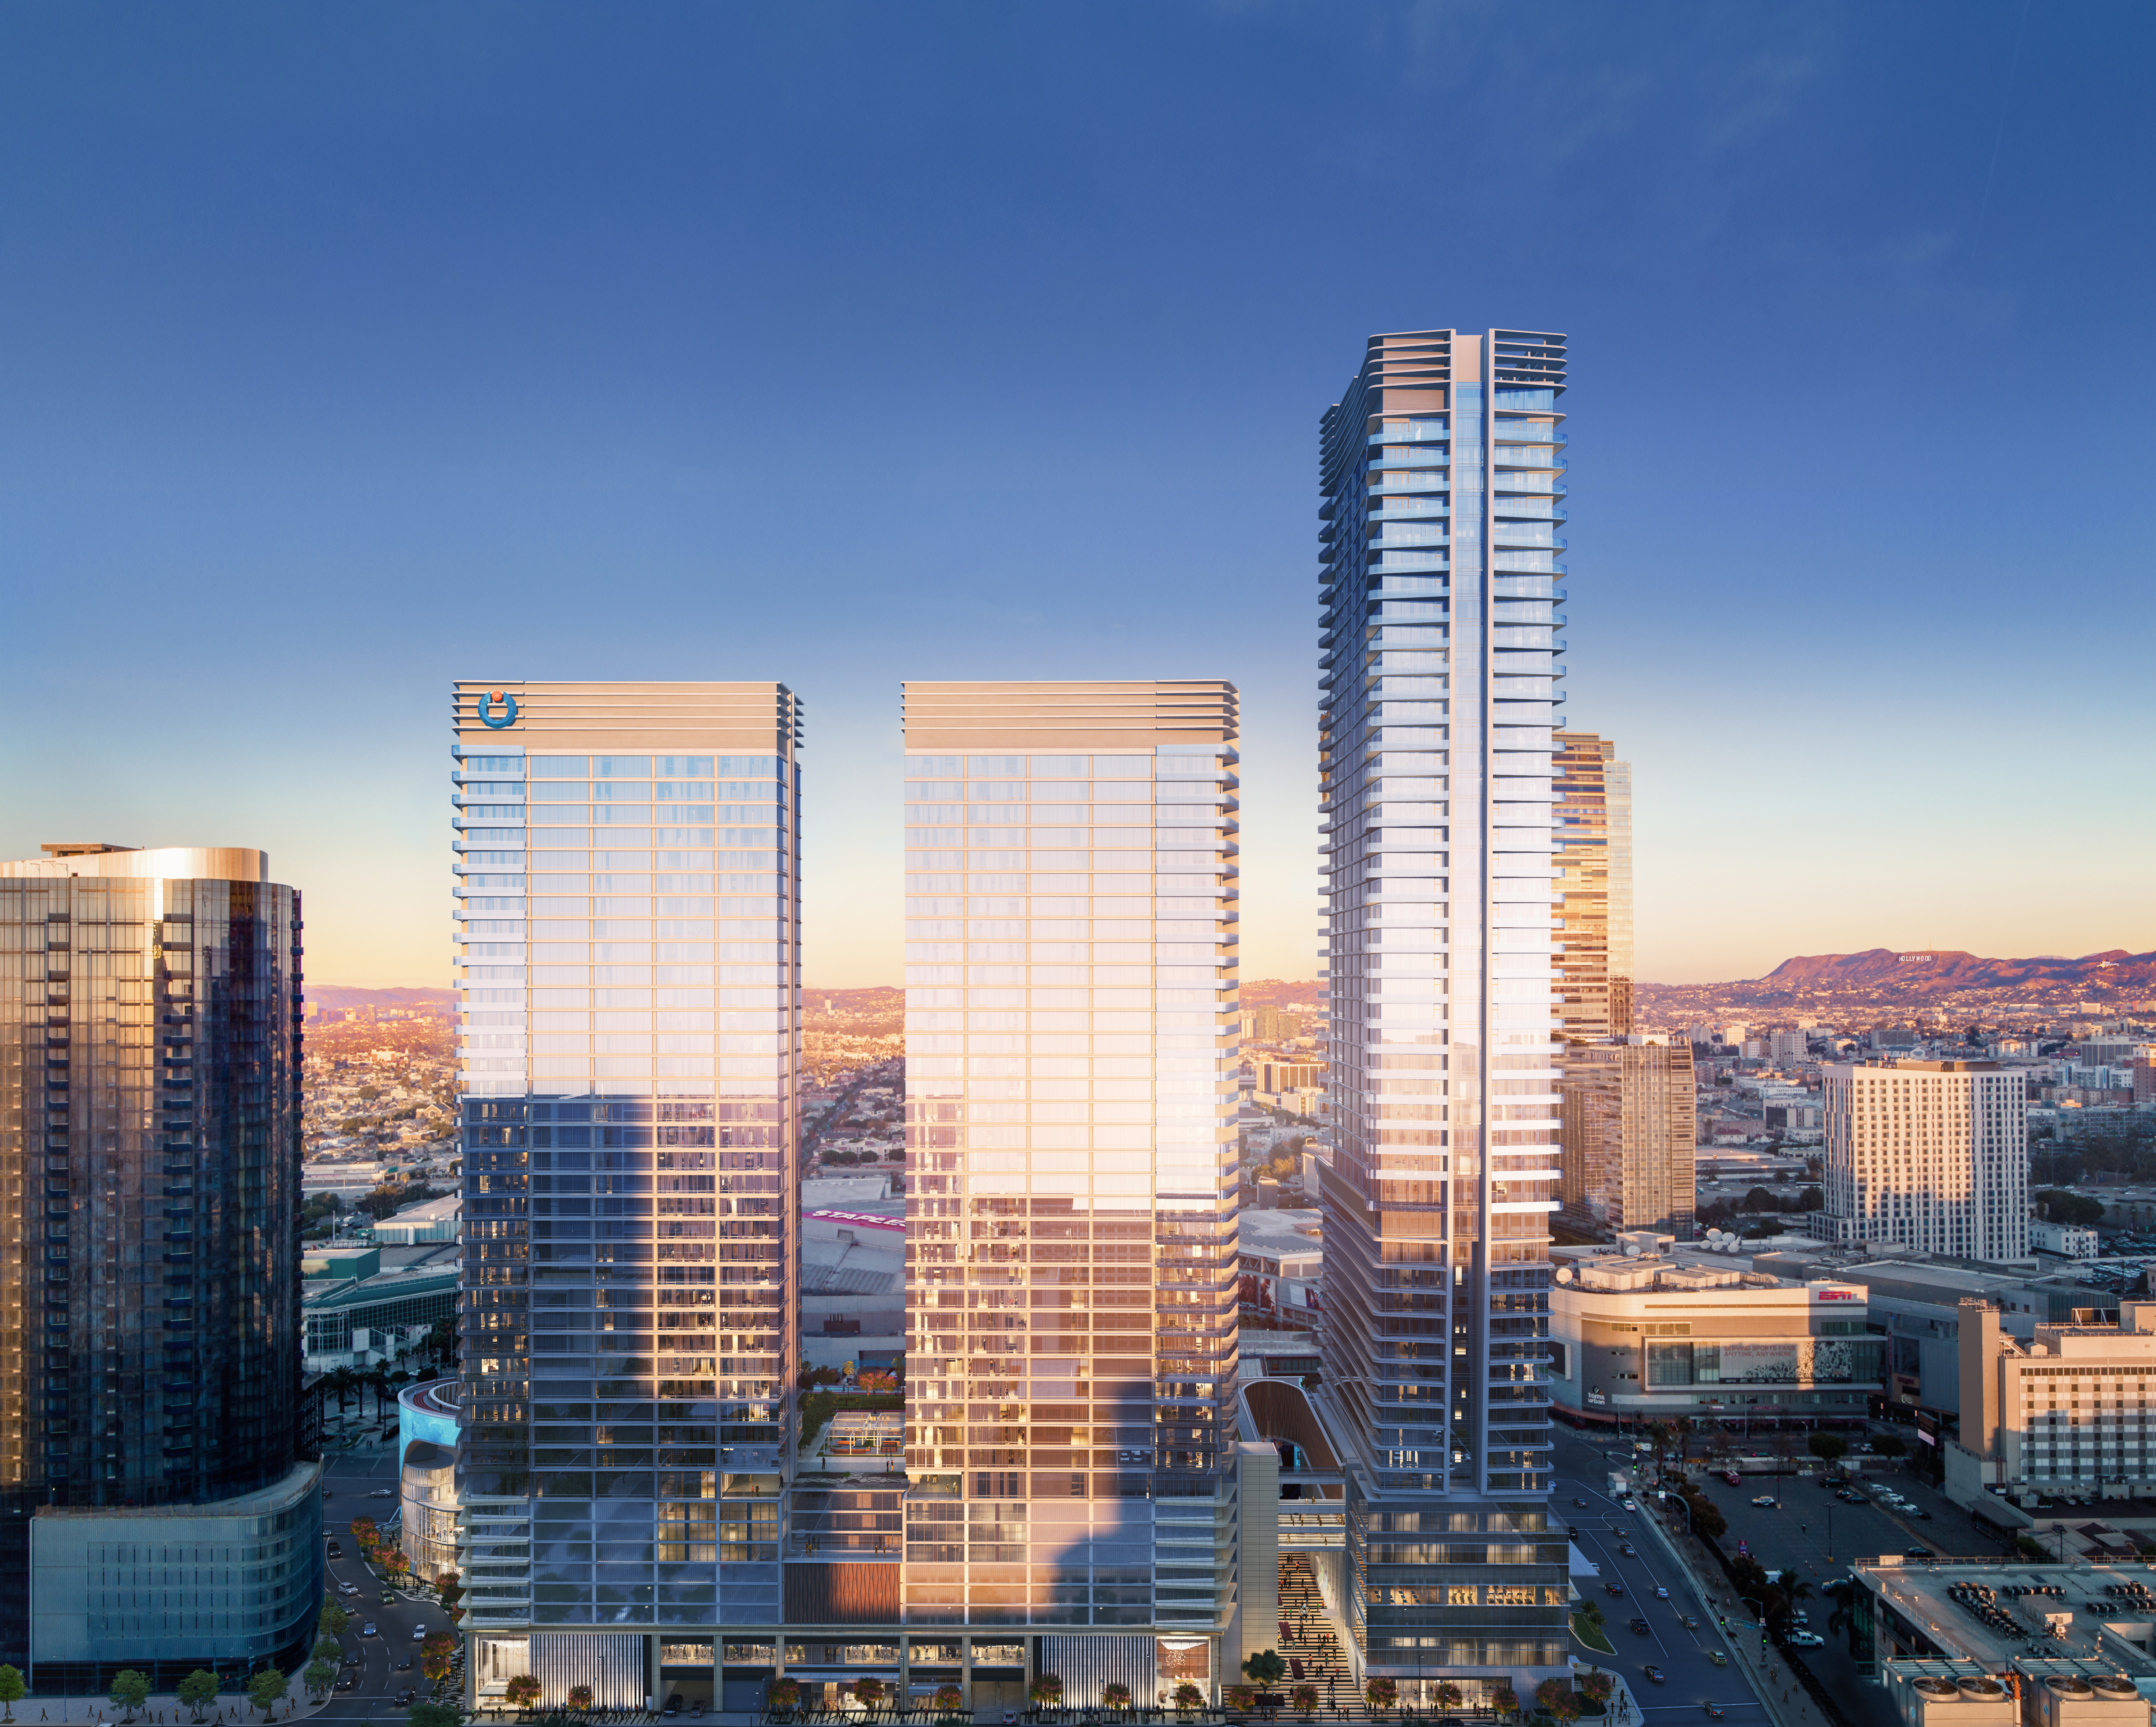 Rendering by: Williams New York